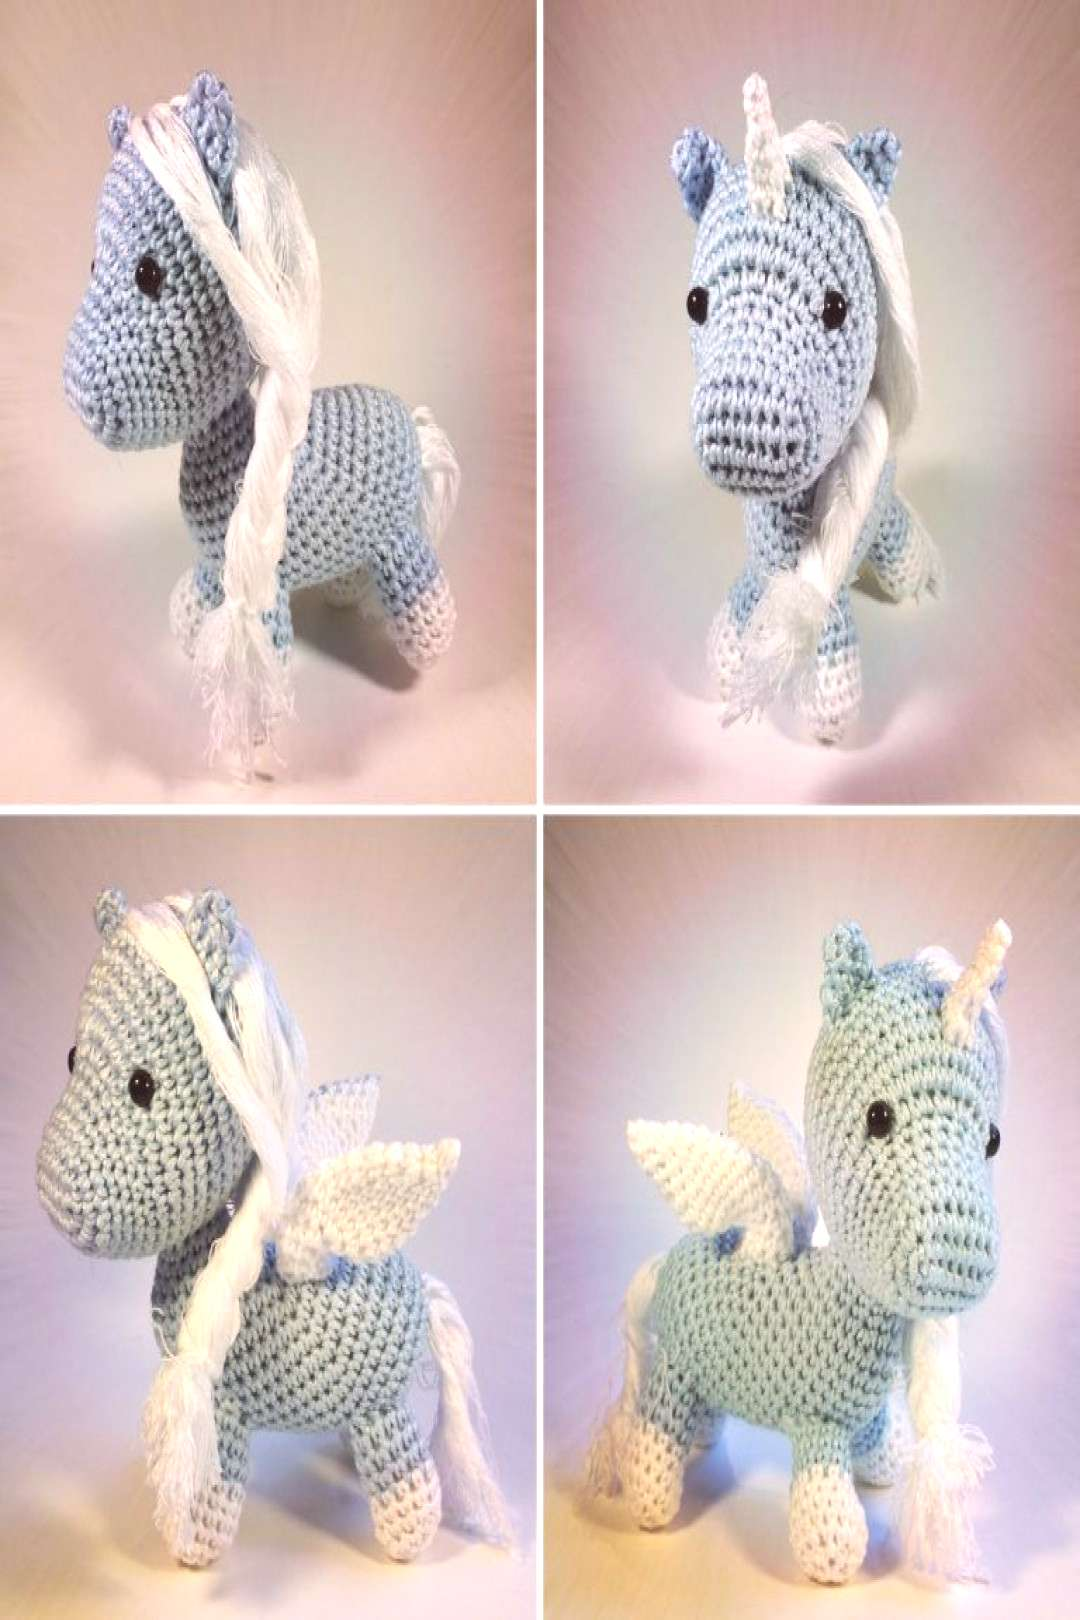 Free crochet pattern: Baby Pegasus or winged unicorn - for fluffy ... ,  Free crochet pattern: Baby